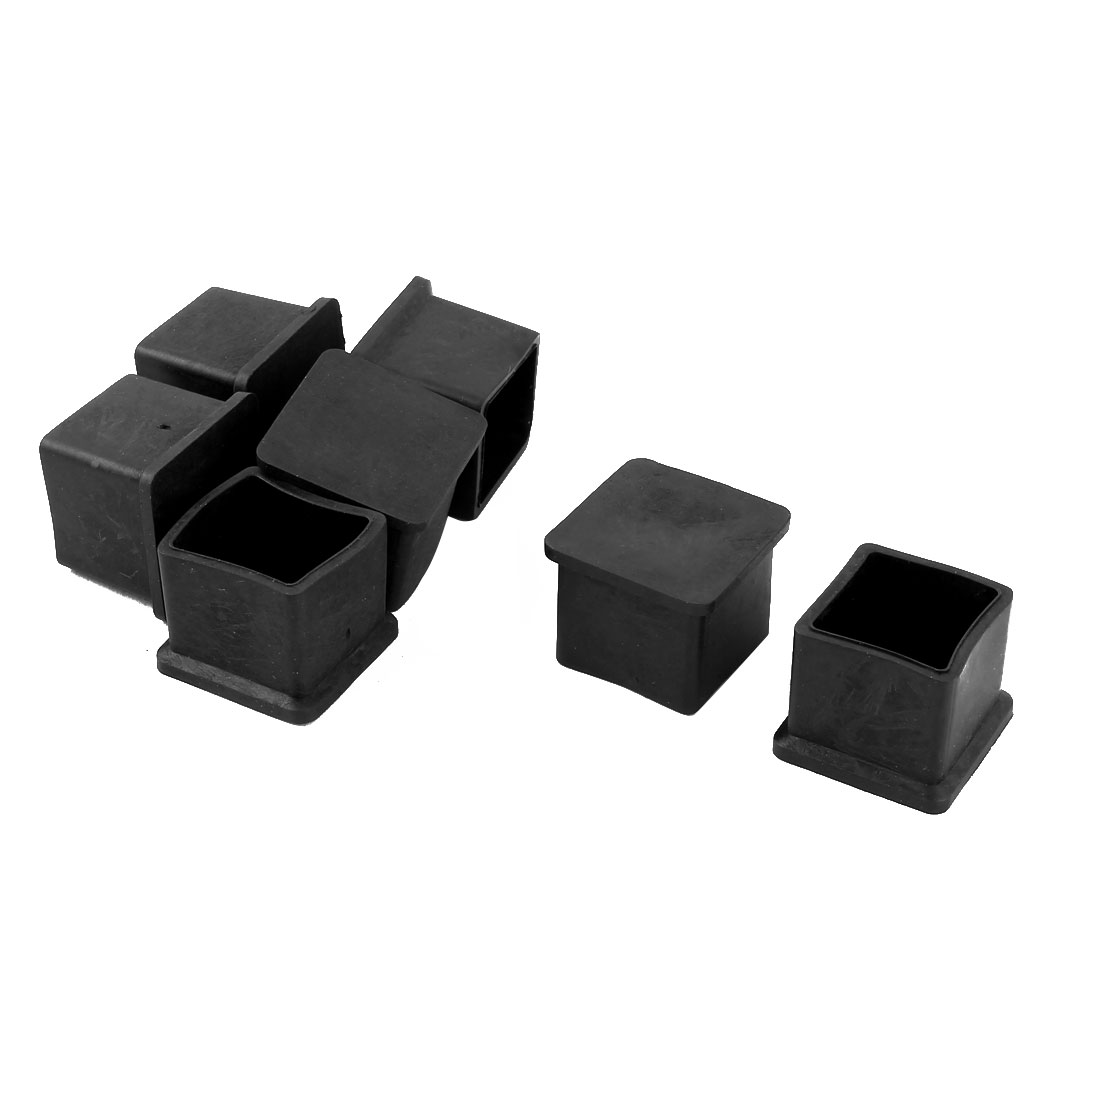 Office Rubber Furniture Table Foot Protector Caps Cover Black 22mm x 22mm 7 Pcs